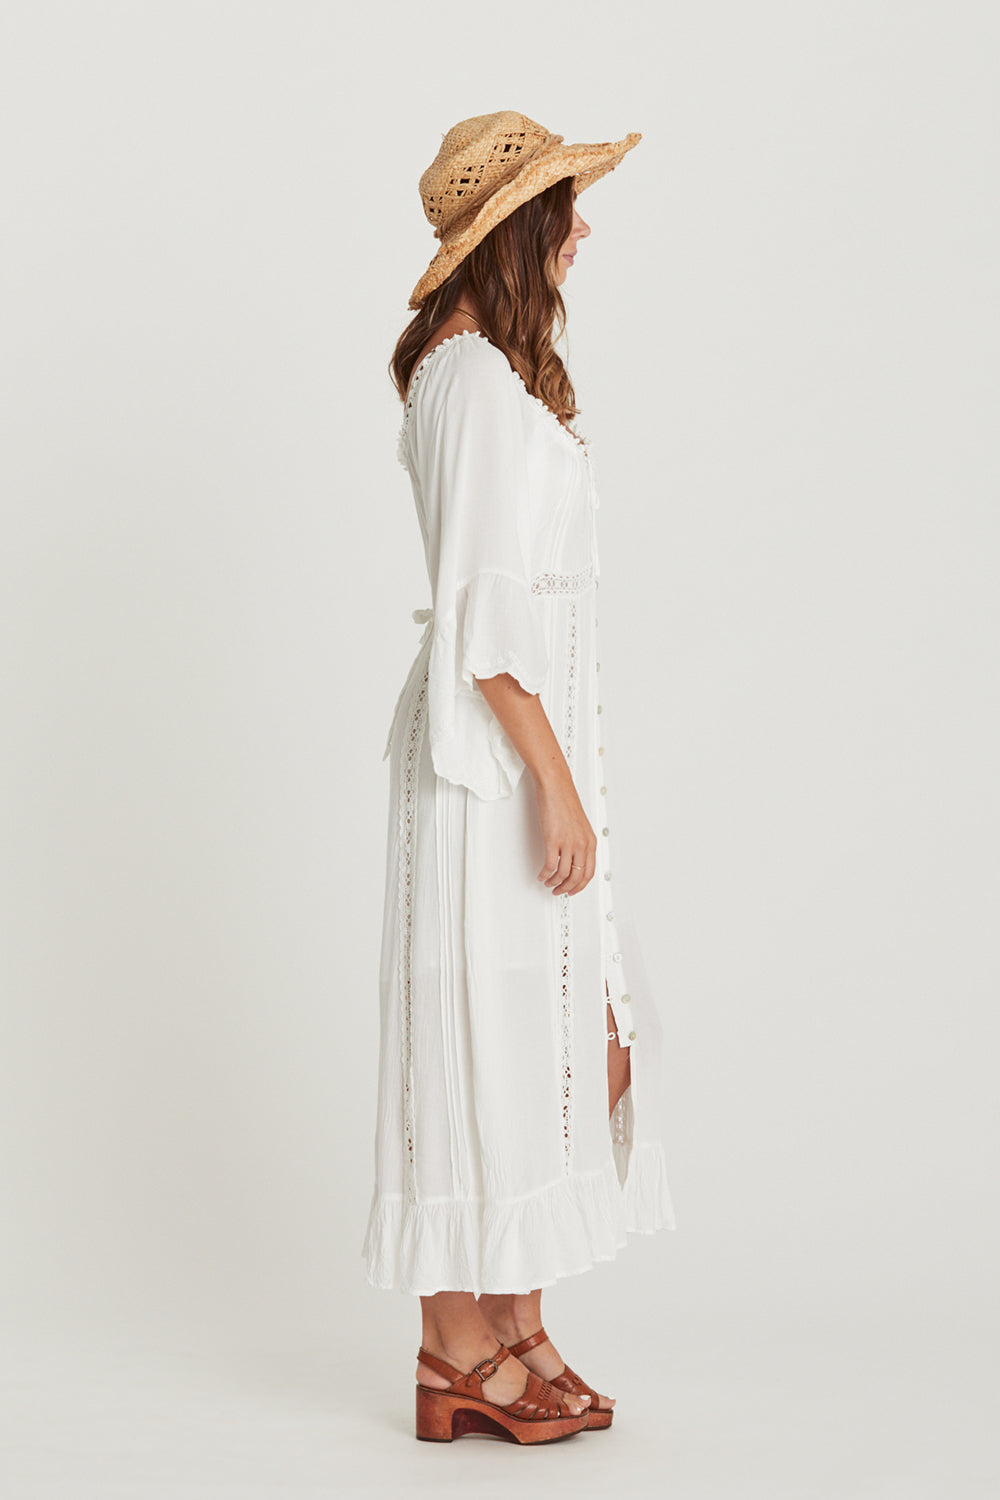 Dreamers Dress in Whisper White